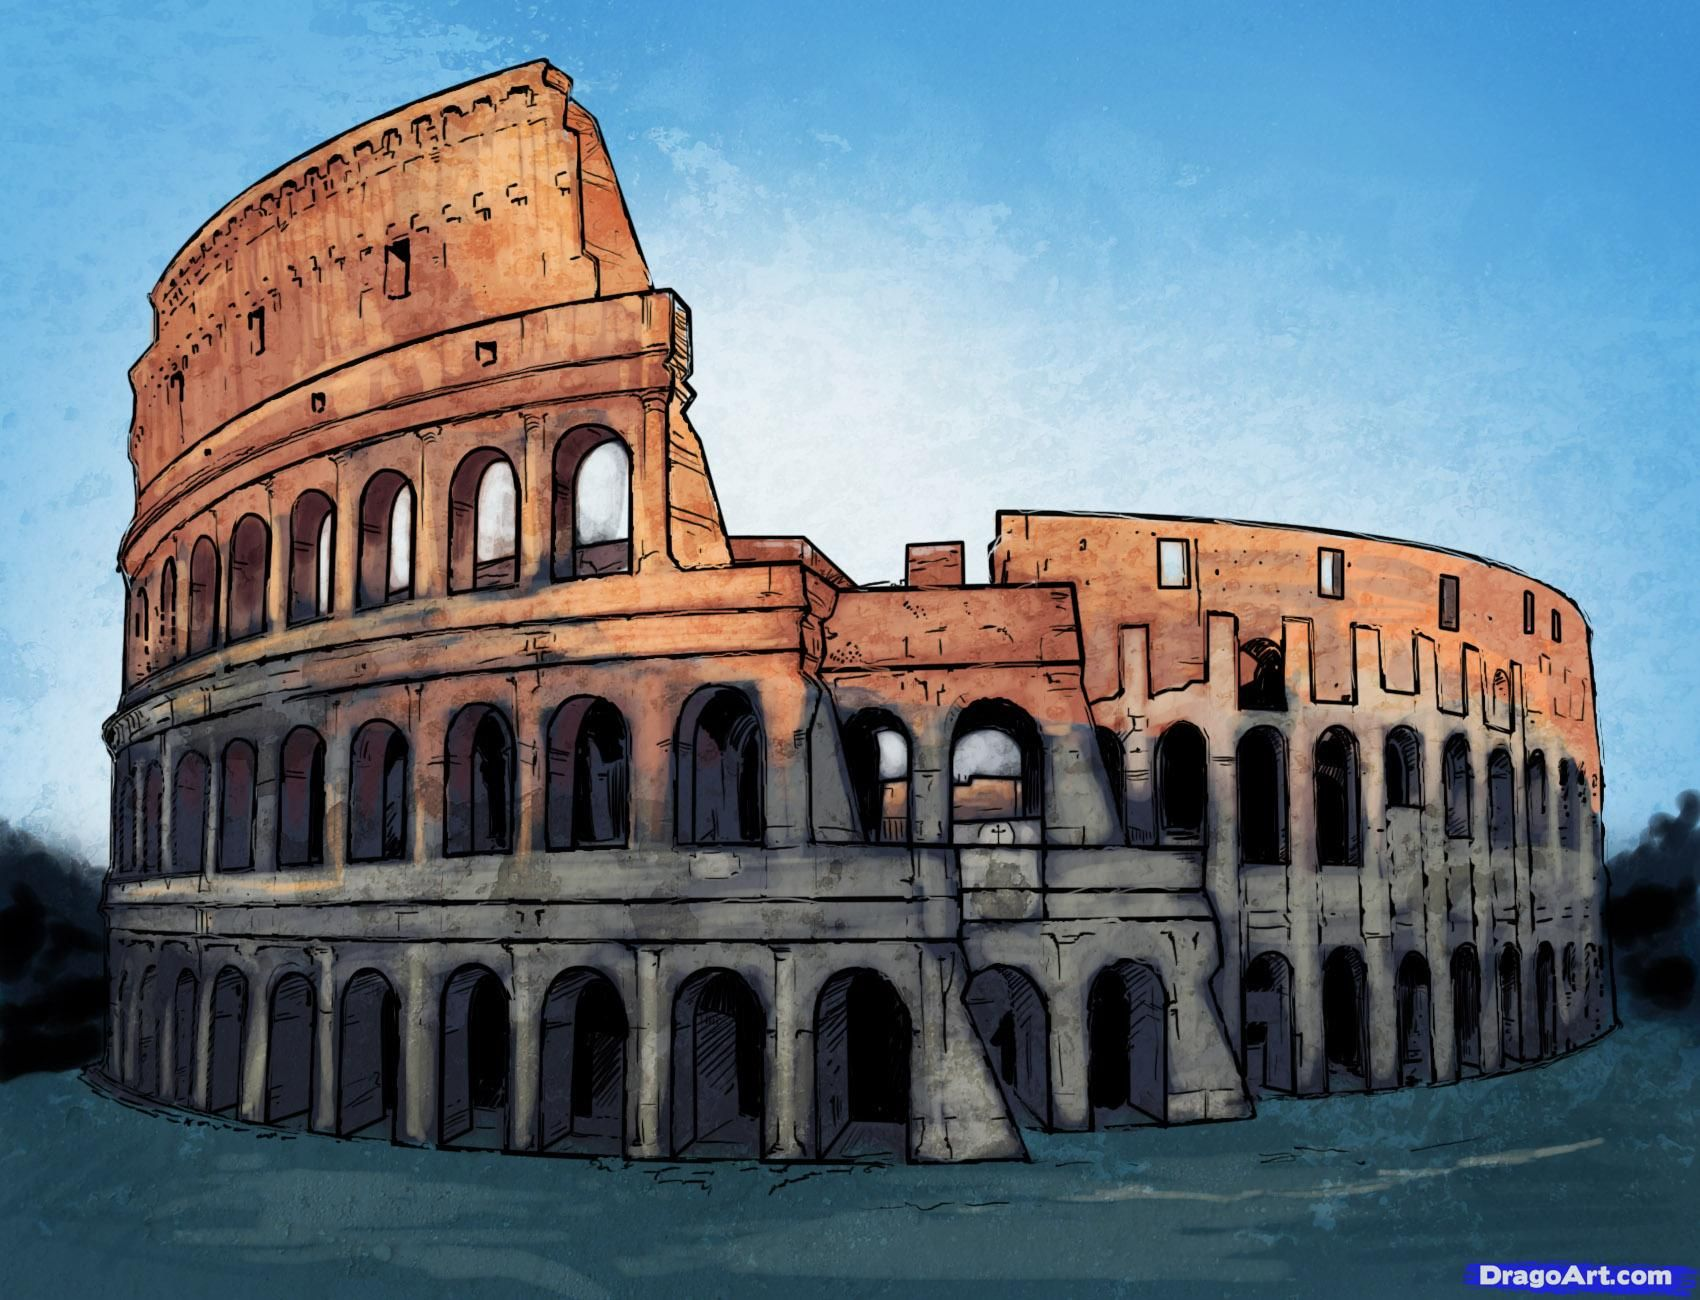 How To Draw The Colosseum - Chapter 1